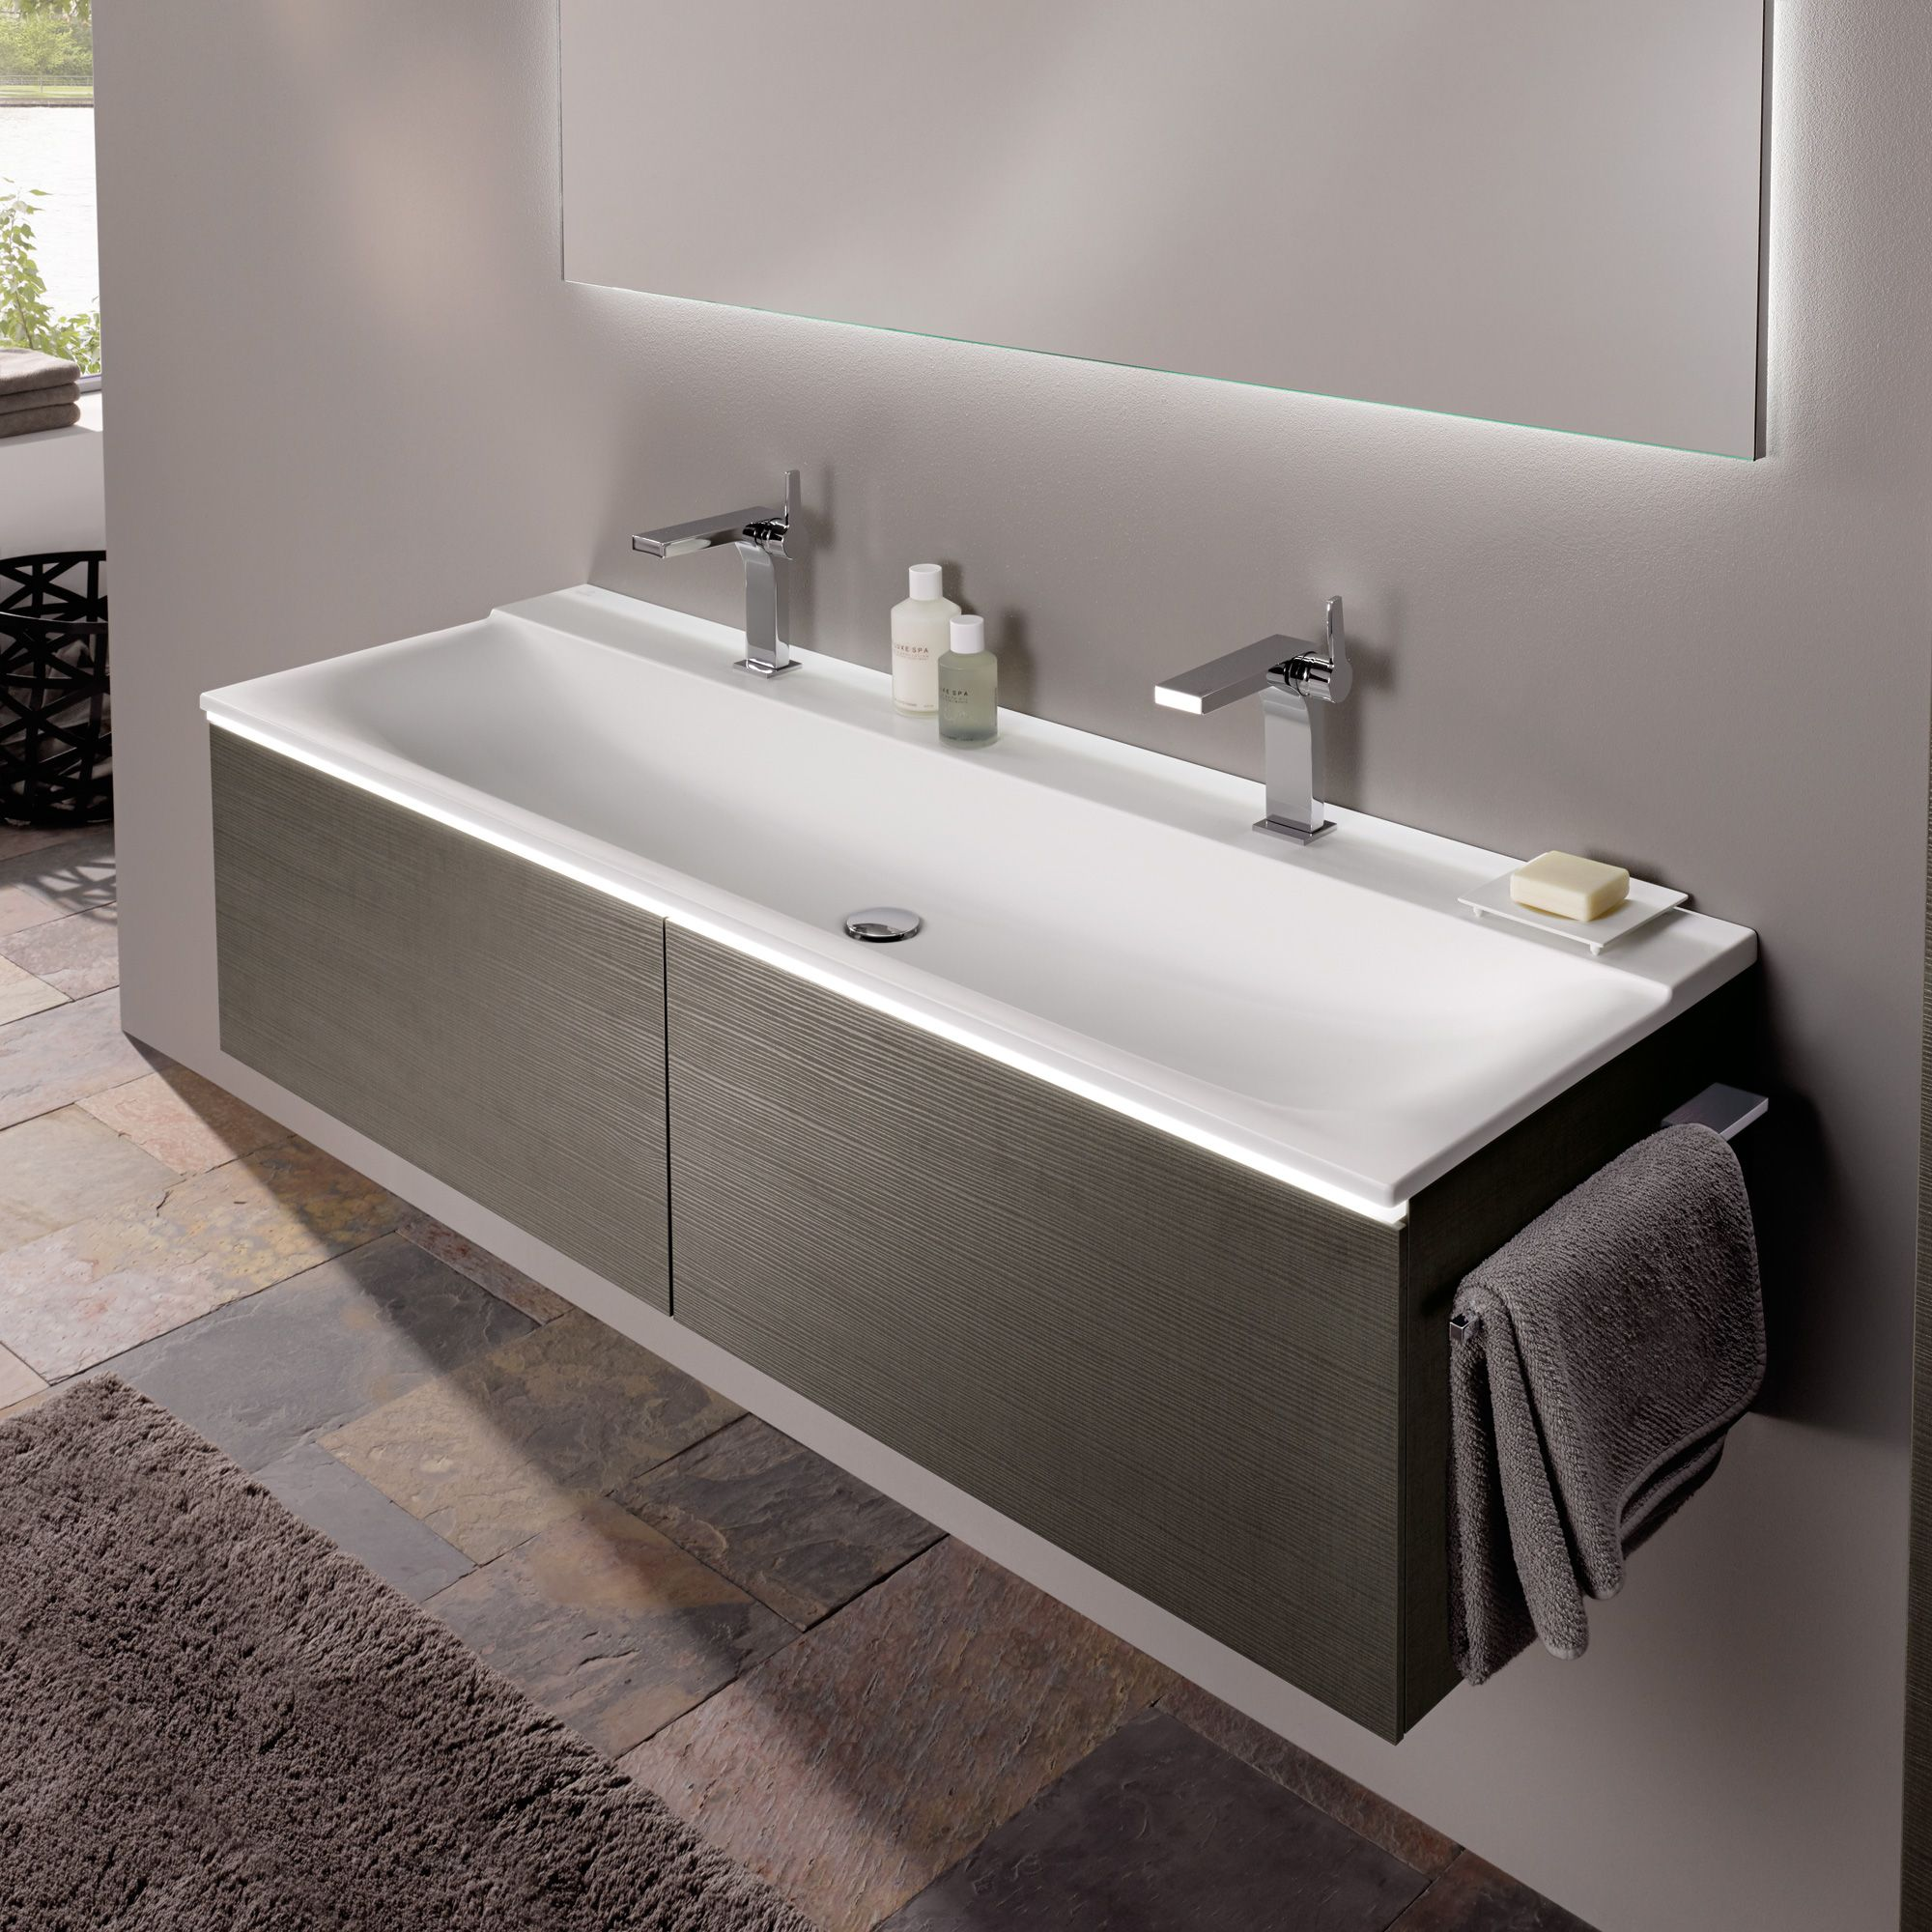 Xeno 2 Bathroom Furniture Google Search Badezimmer Keramag